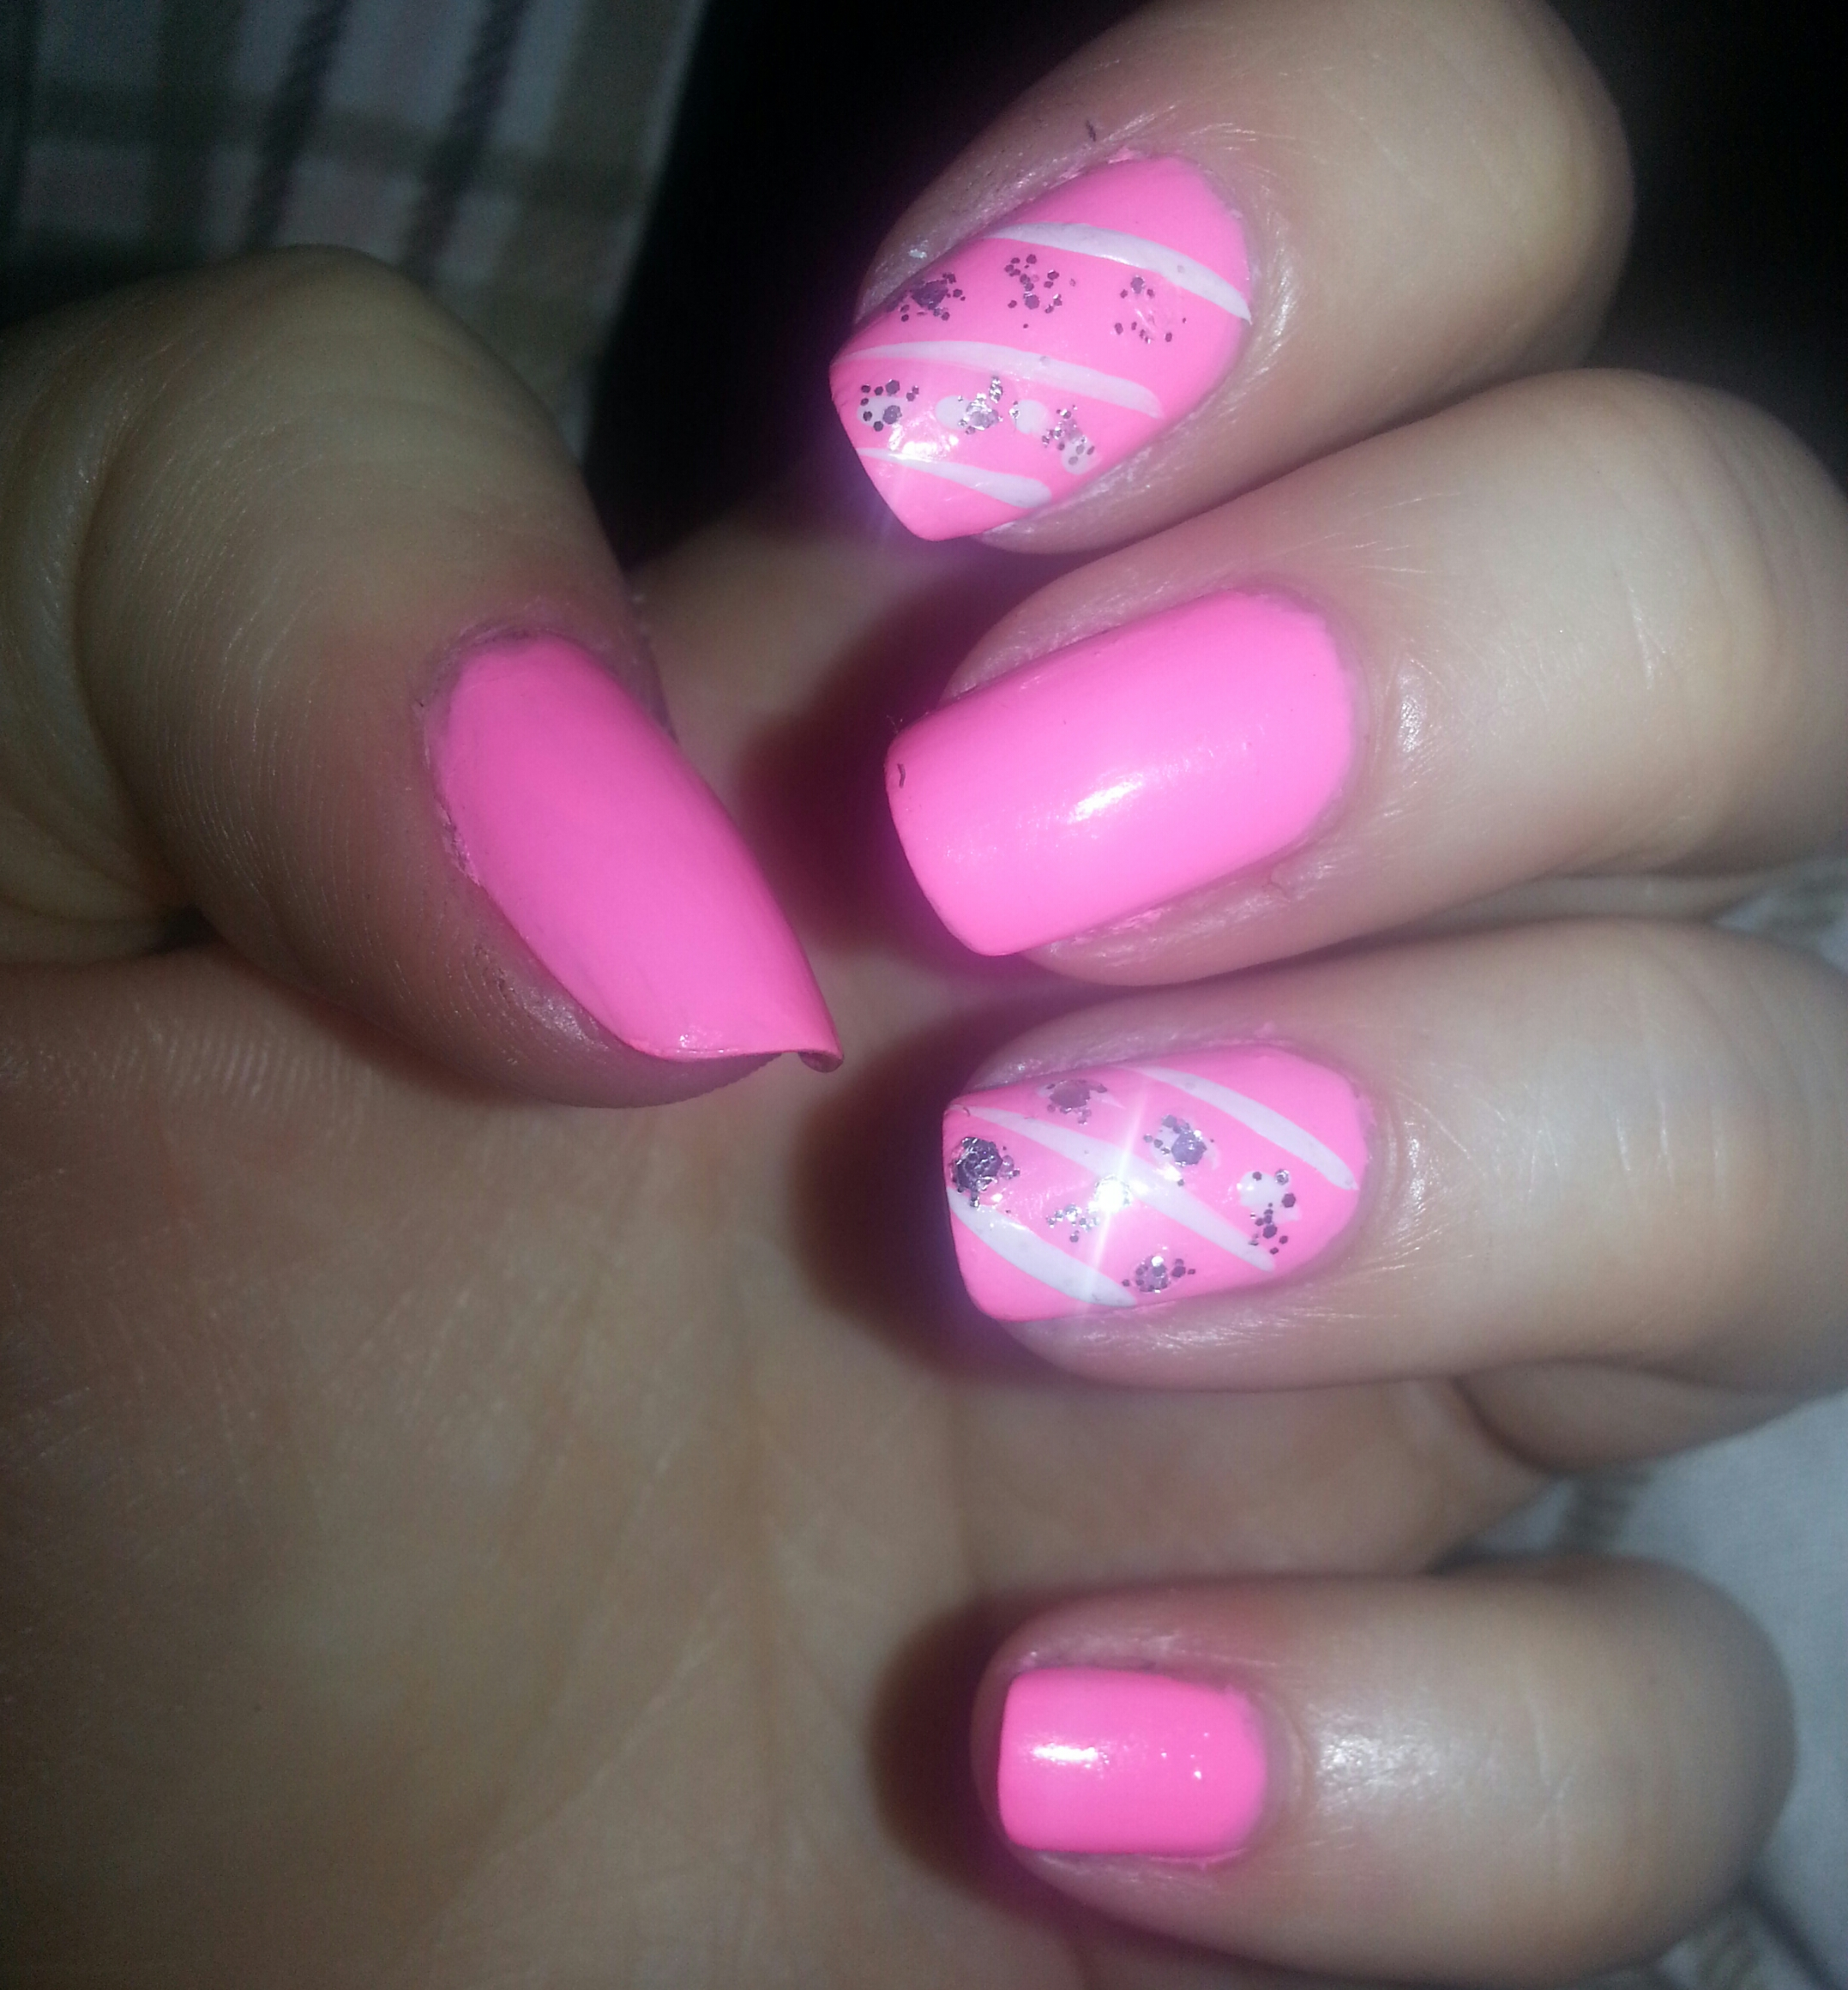 My Barbie pink nails